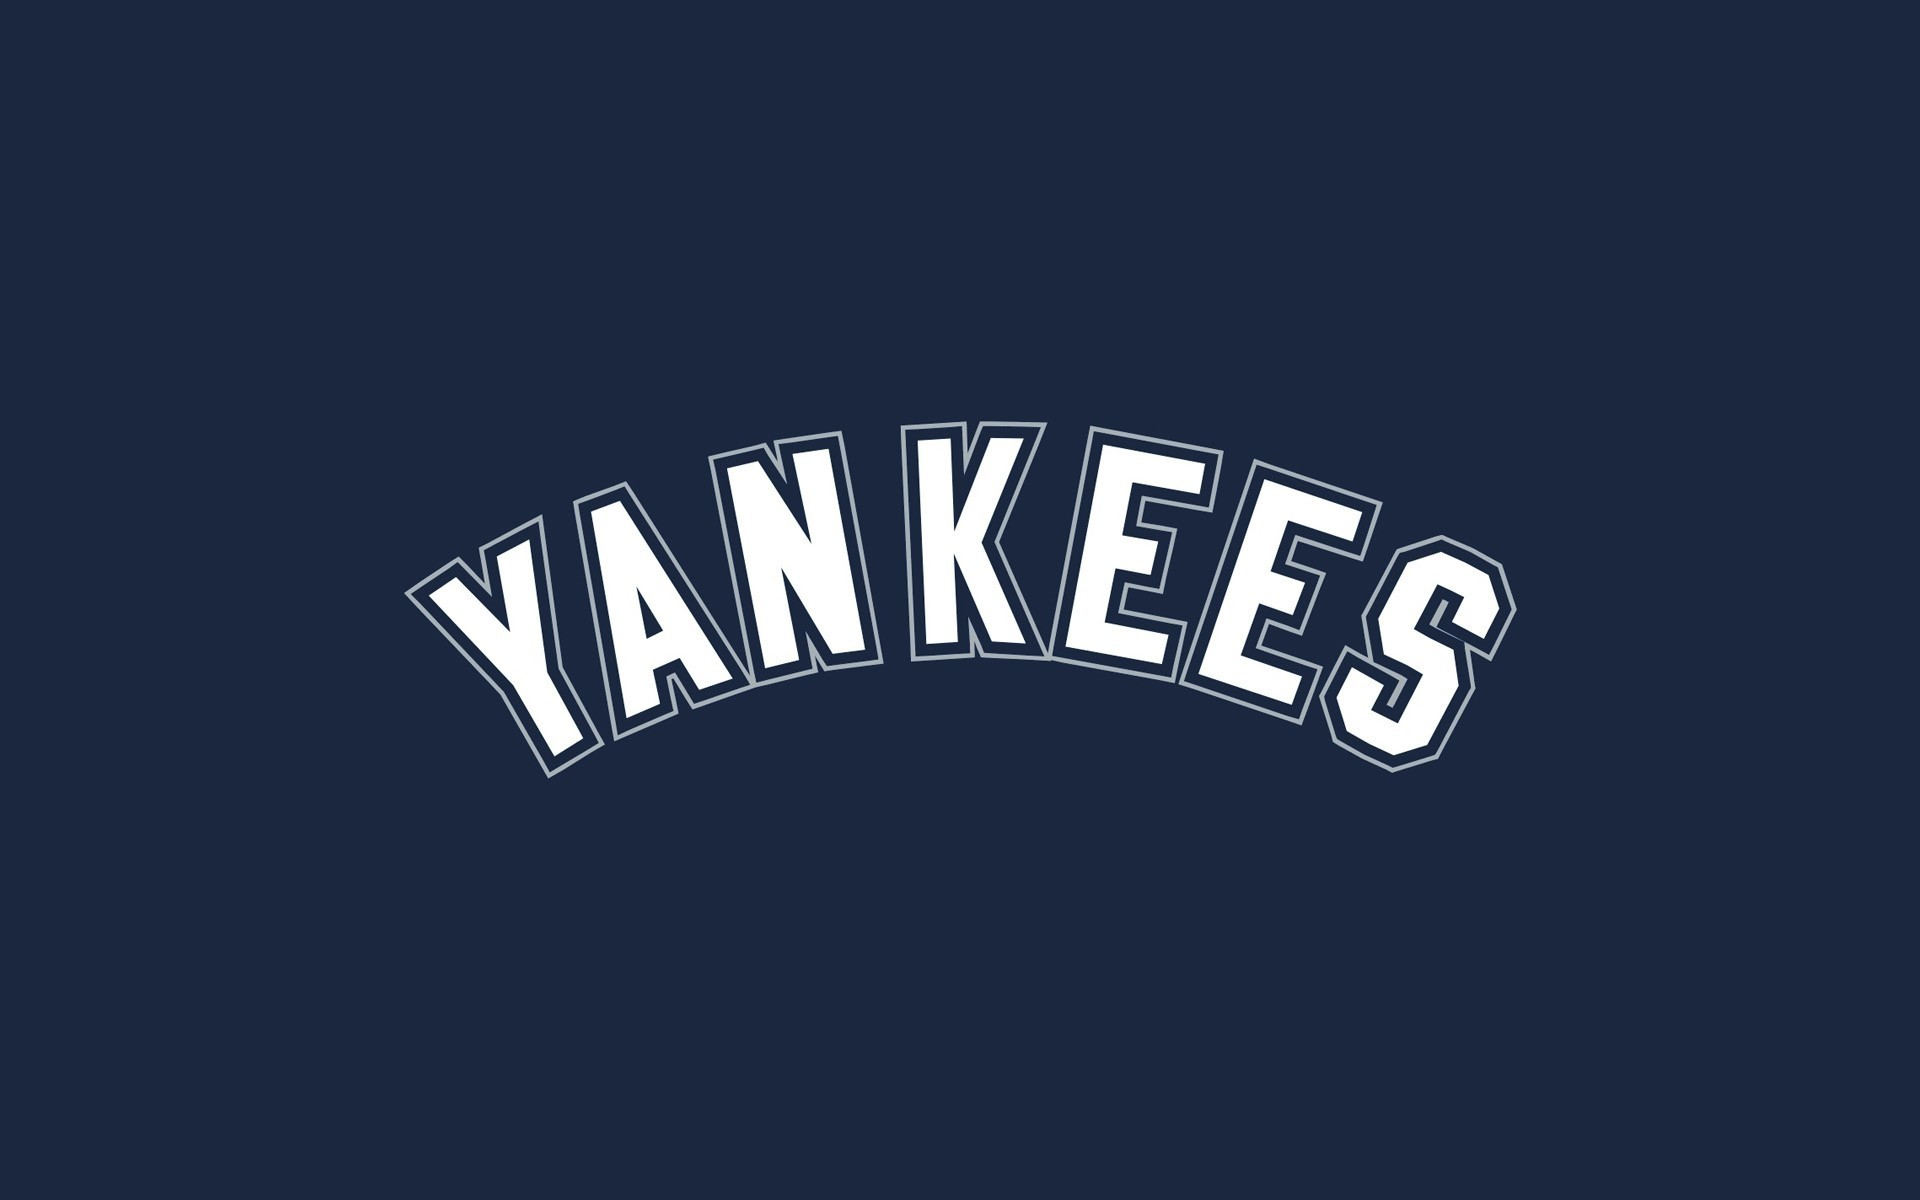 1920x1200 New York Yankees HD Wallpaper | Background Image |  | ID:416457 -  Wallpaper Abyss